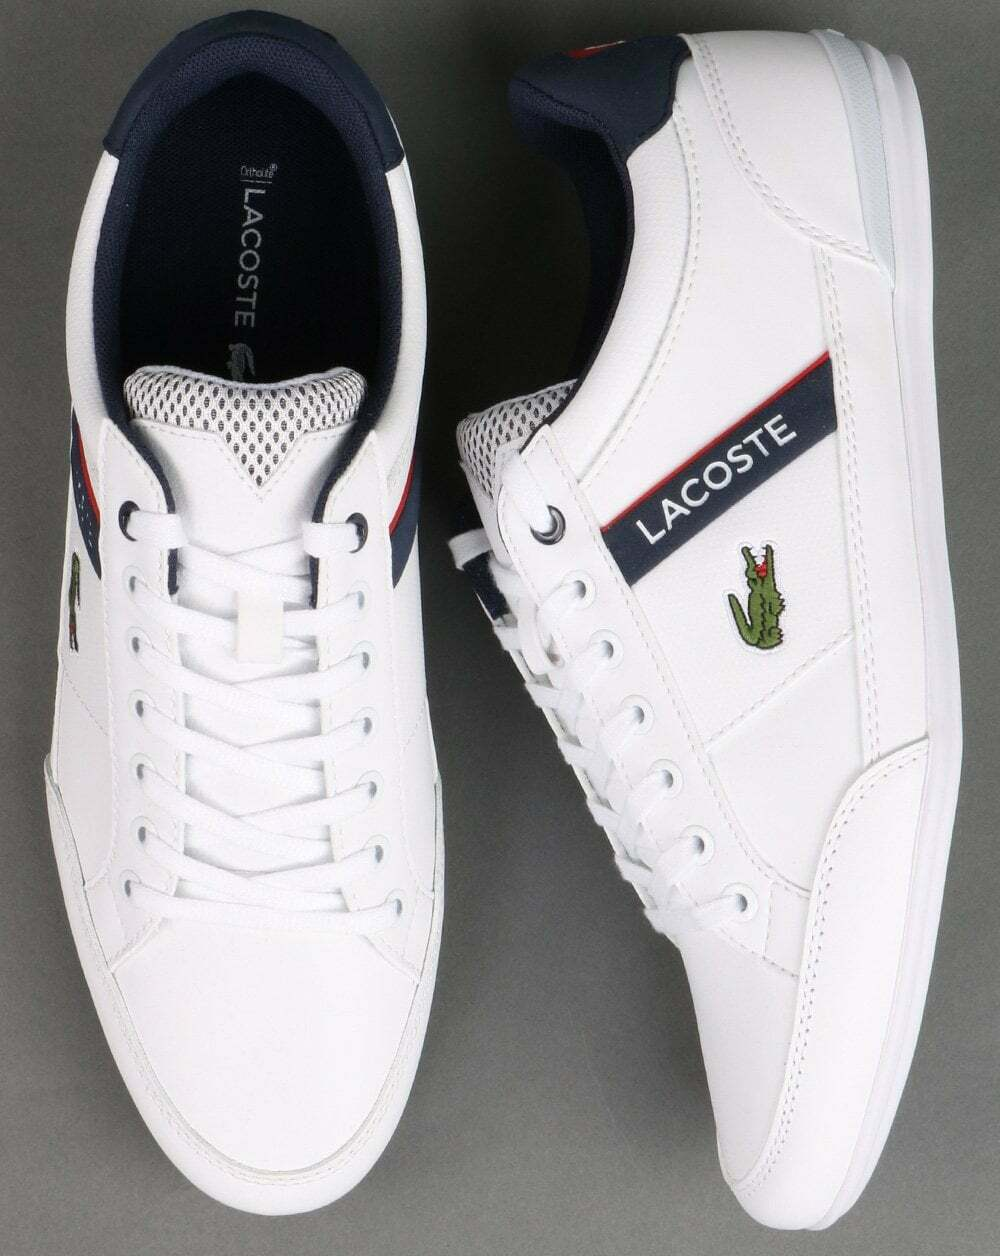 Lacoste Chaymon Trainer White/navy/red